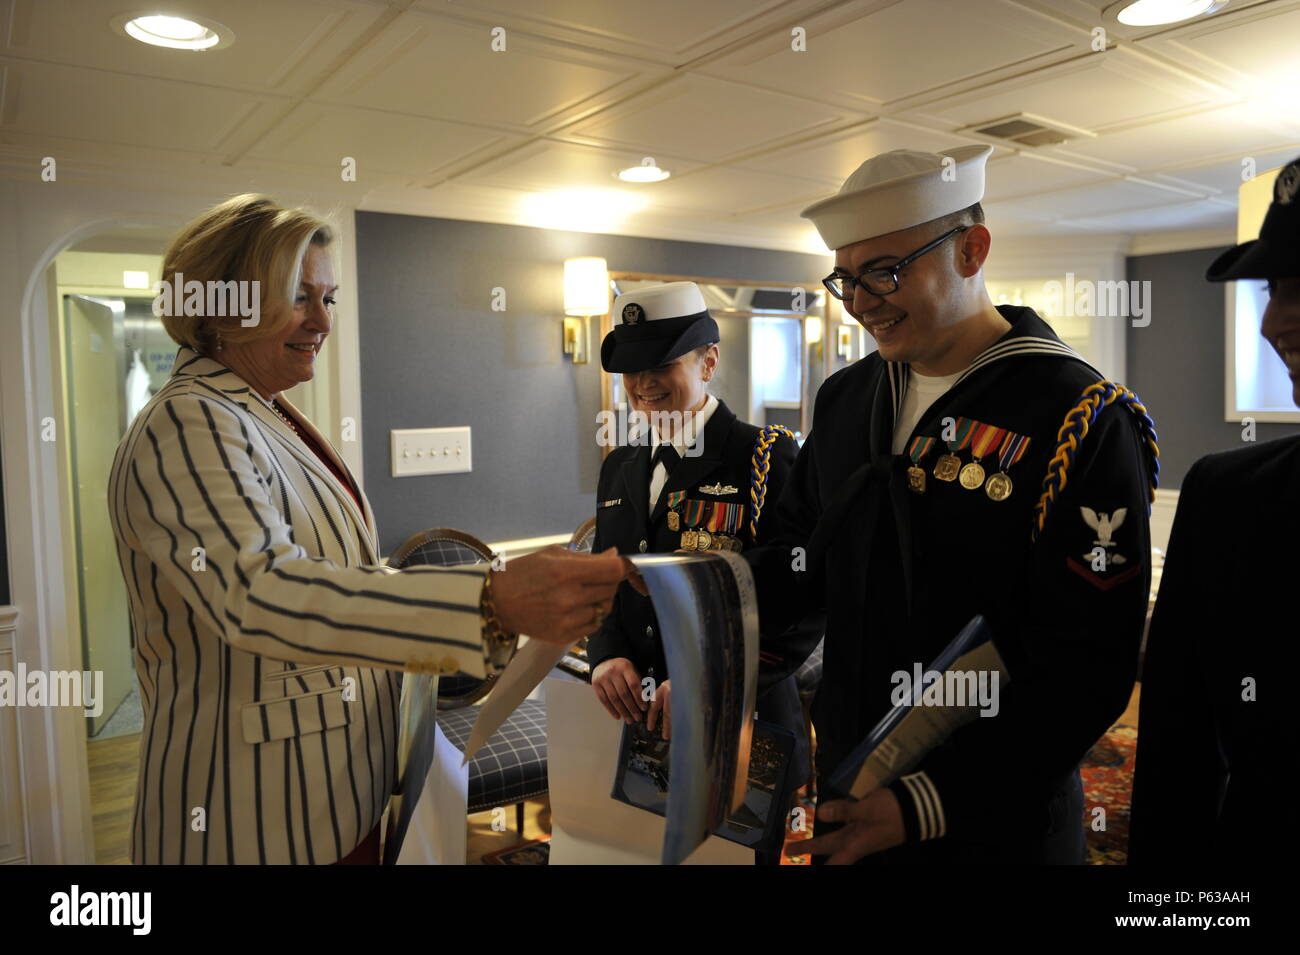 NEWPORT NEWS, Va., (April 8, 2016) Susan Ford Bales, ship sponsor, presents autographed ship photos to members of Pre-Commissioning Unit Gerald R. Ford's (CVN 78) command choir.  Ford is the first of a new class of aircraft carriers currently under construction by Huntington Ingalls Newport News Shipbuilding. (U.S. Navy photo by Mass Communication Specialist 3rd Class Matthew Fairchild/Released) - Stock Image